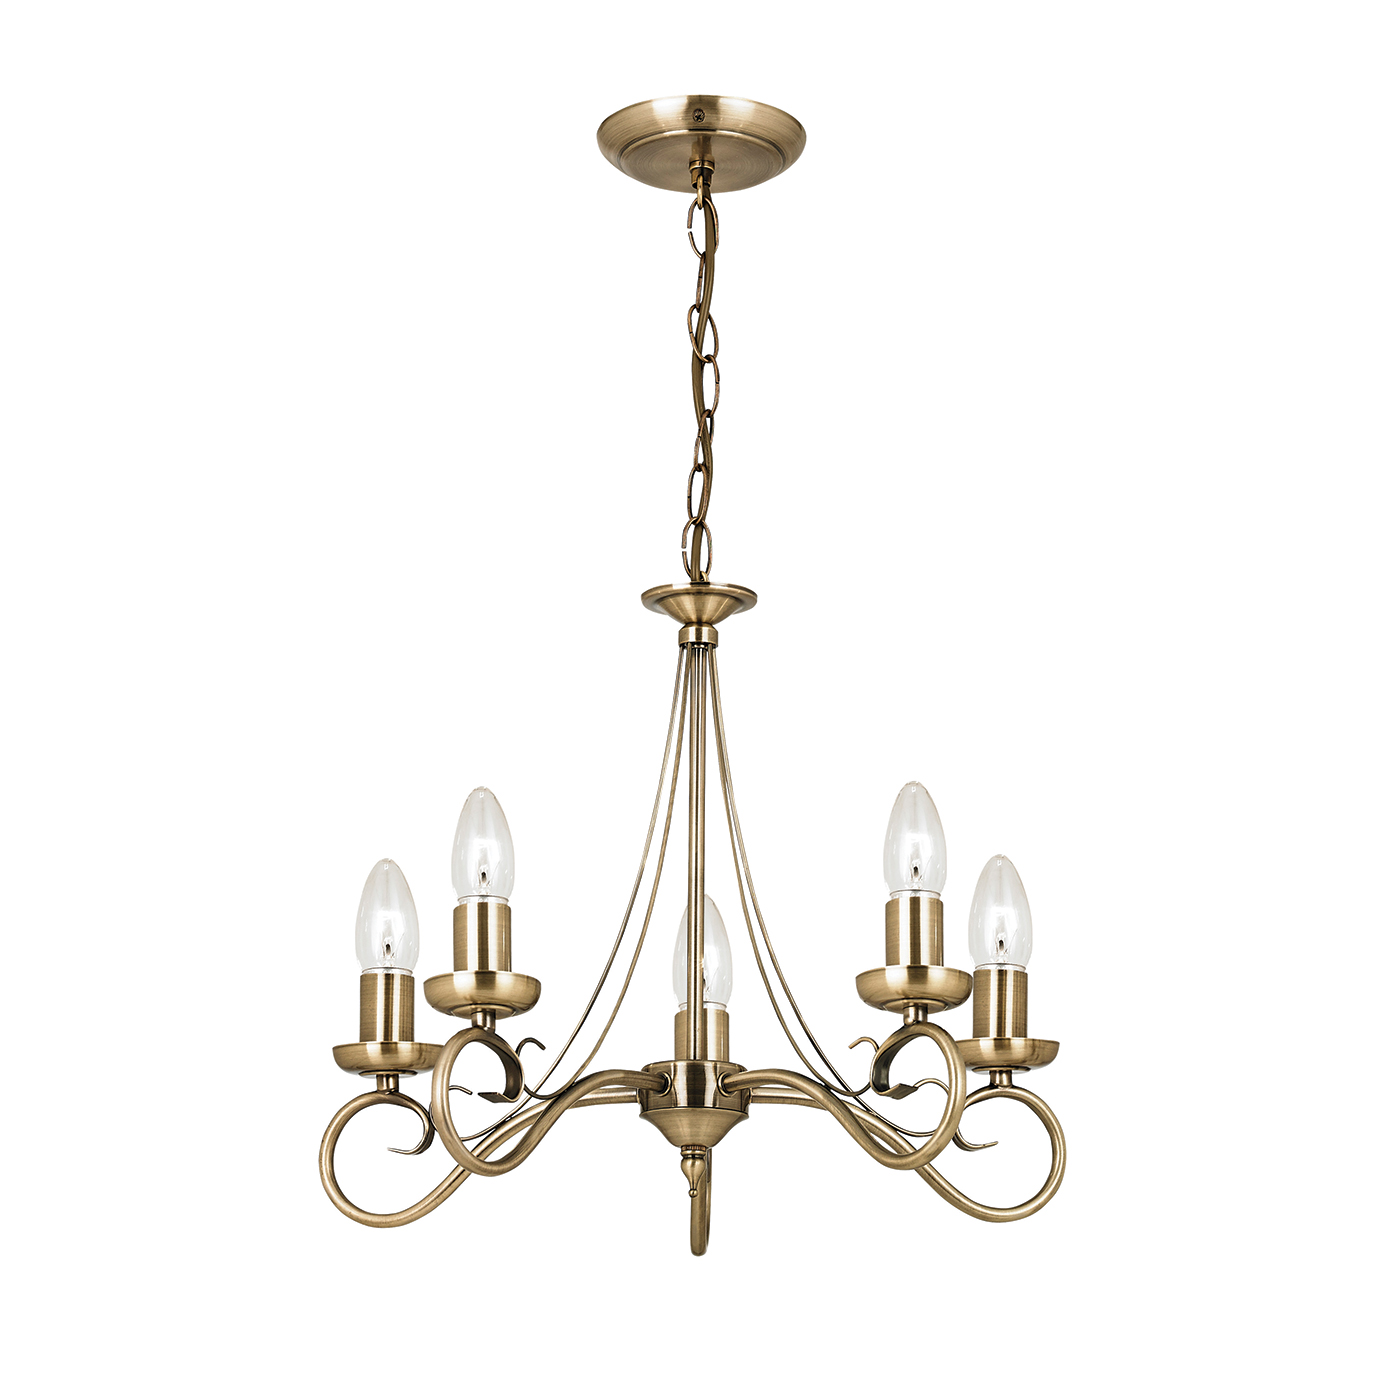 Endon Trafford chandelier 5x 60W Antique brass effect plate Thumbnail 1